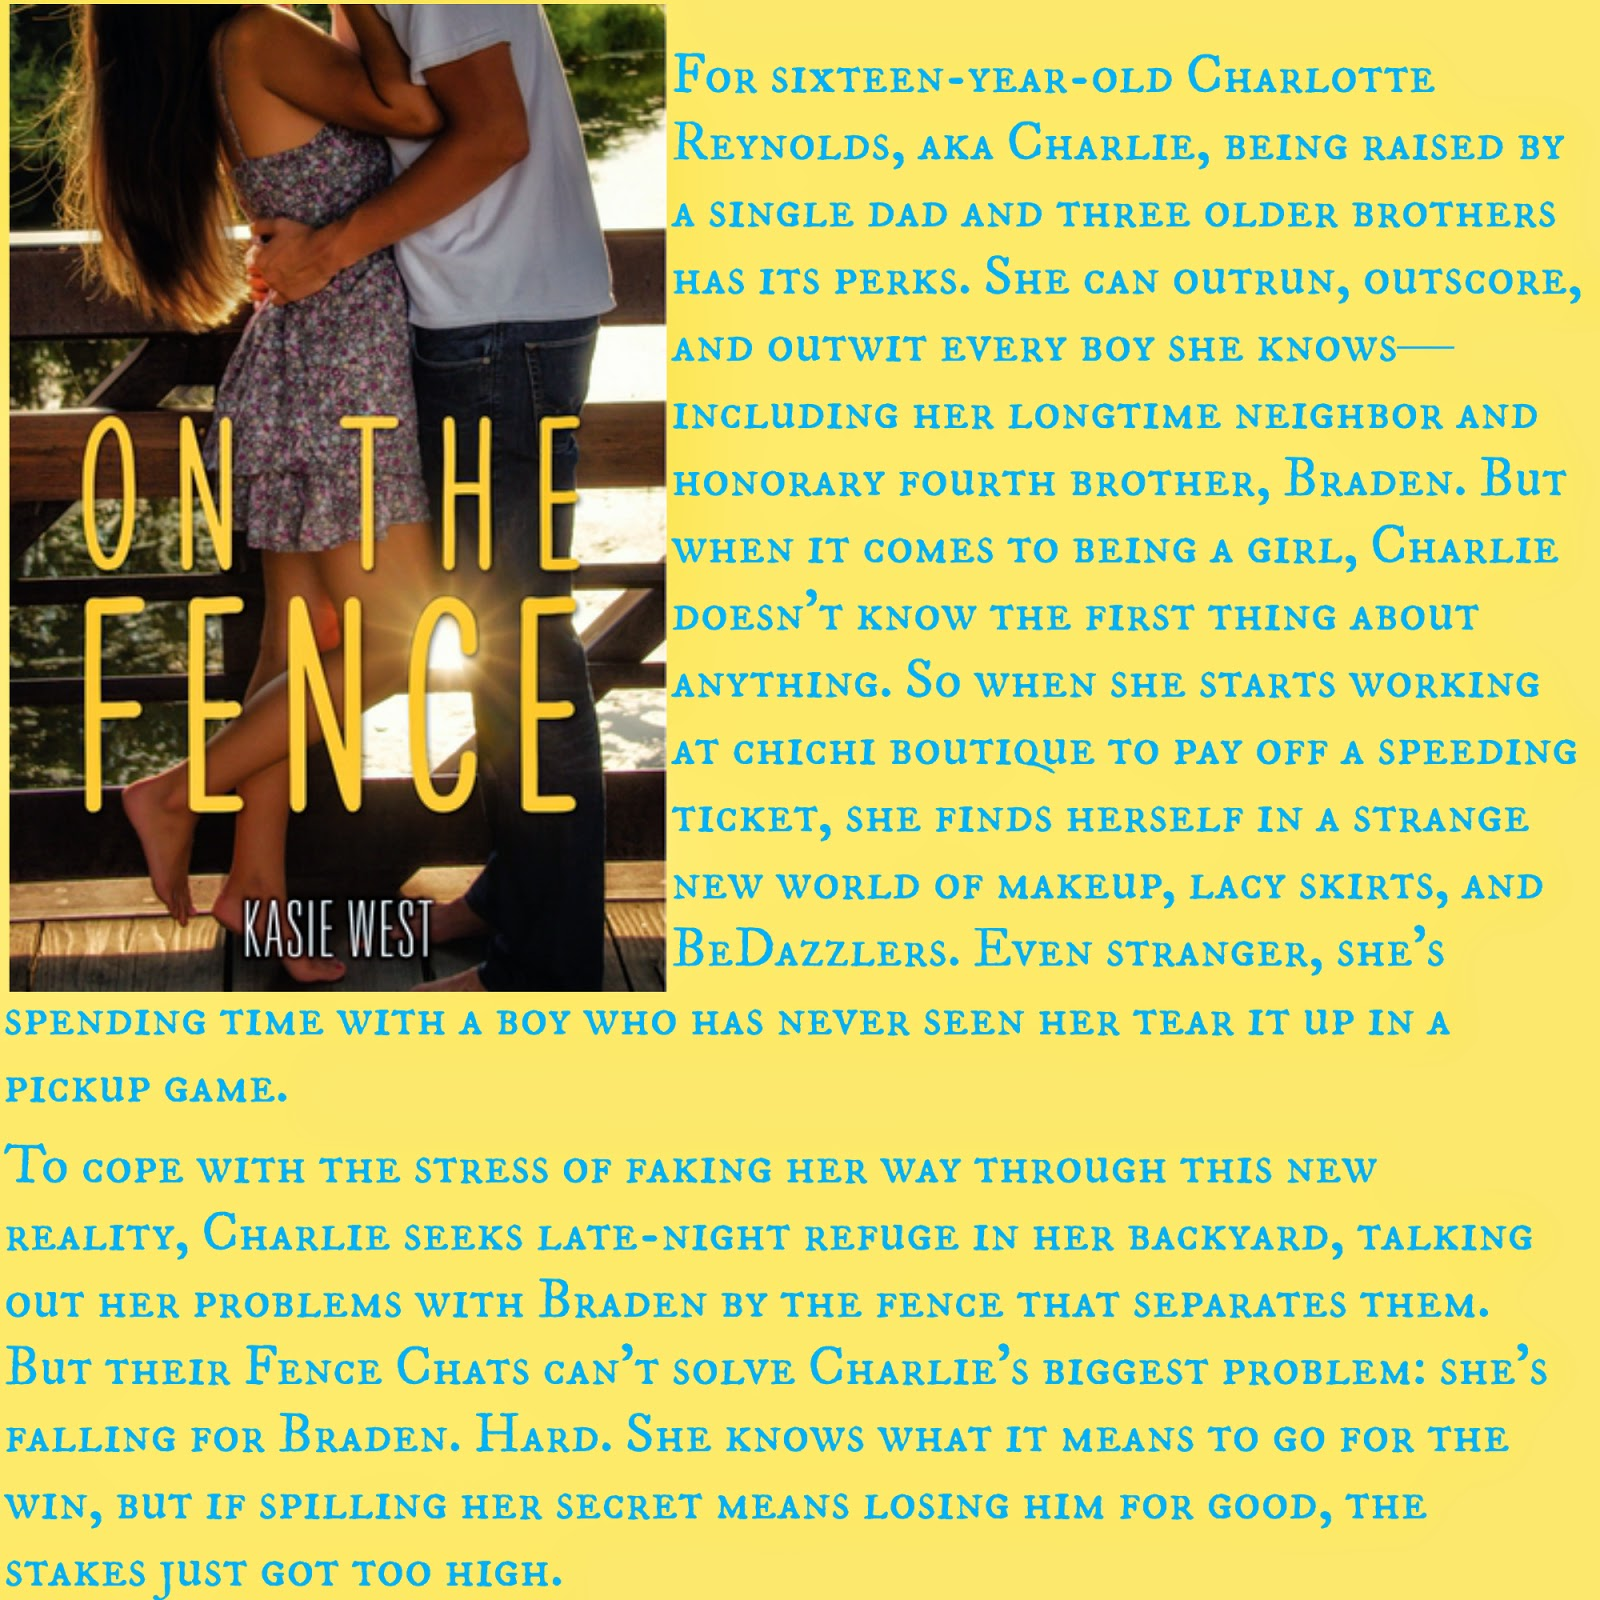 hello jenny reviews review on the fence by kasie west